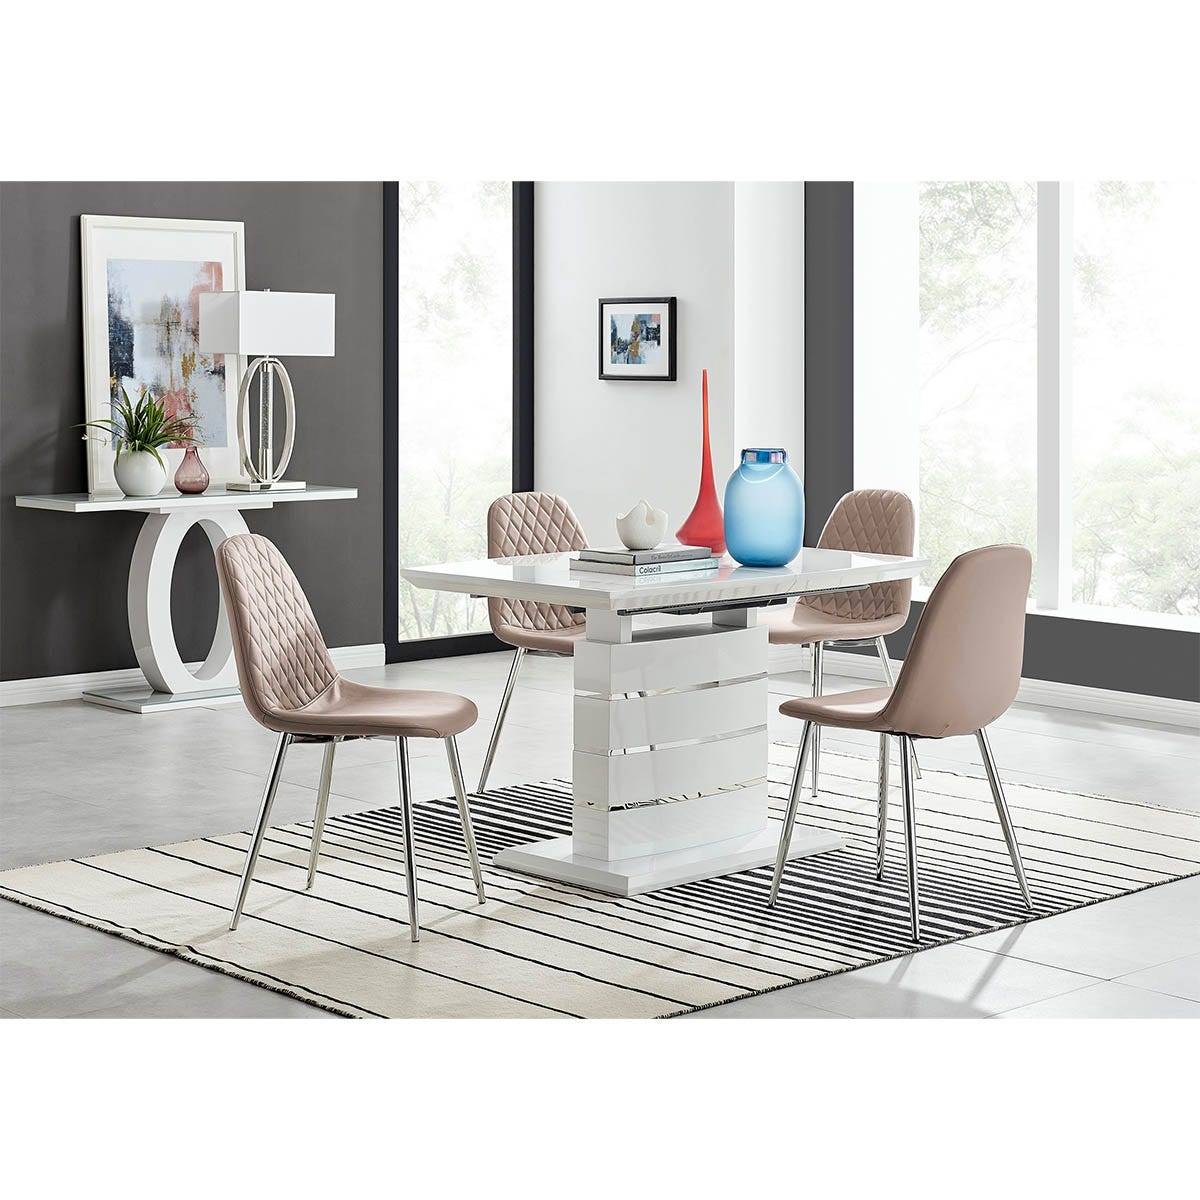 Furniture Box Renato 120cm High Gloss Extending Dining Table and 4 Cappuccino Corona Silver Leg Chairs